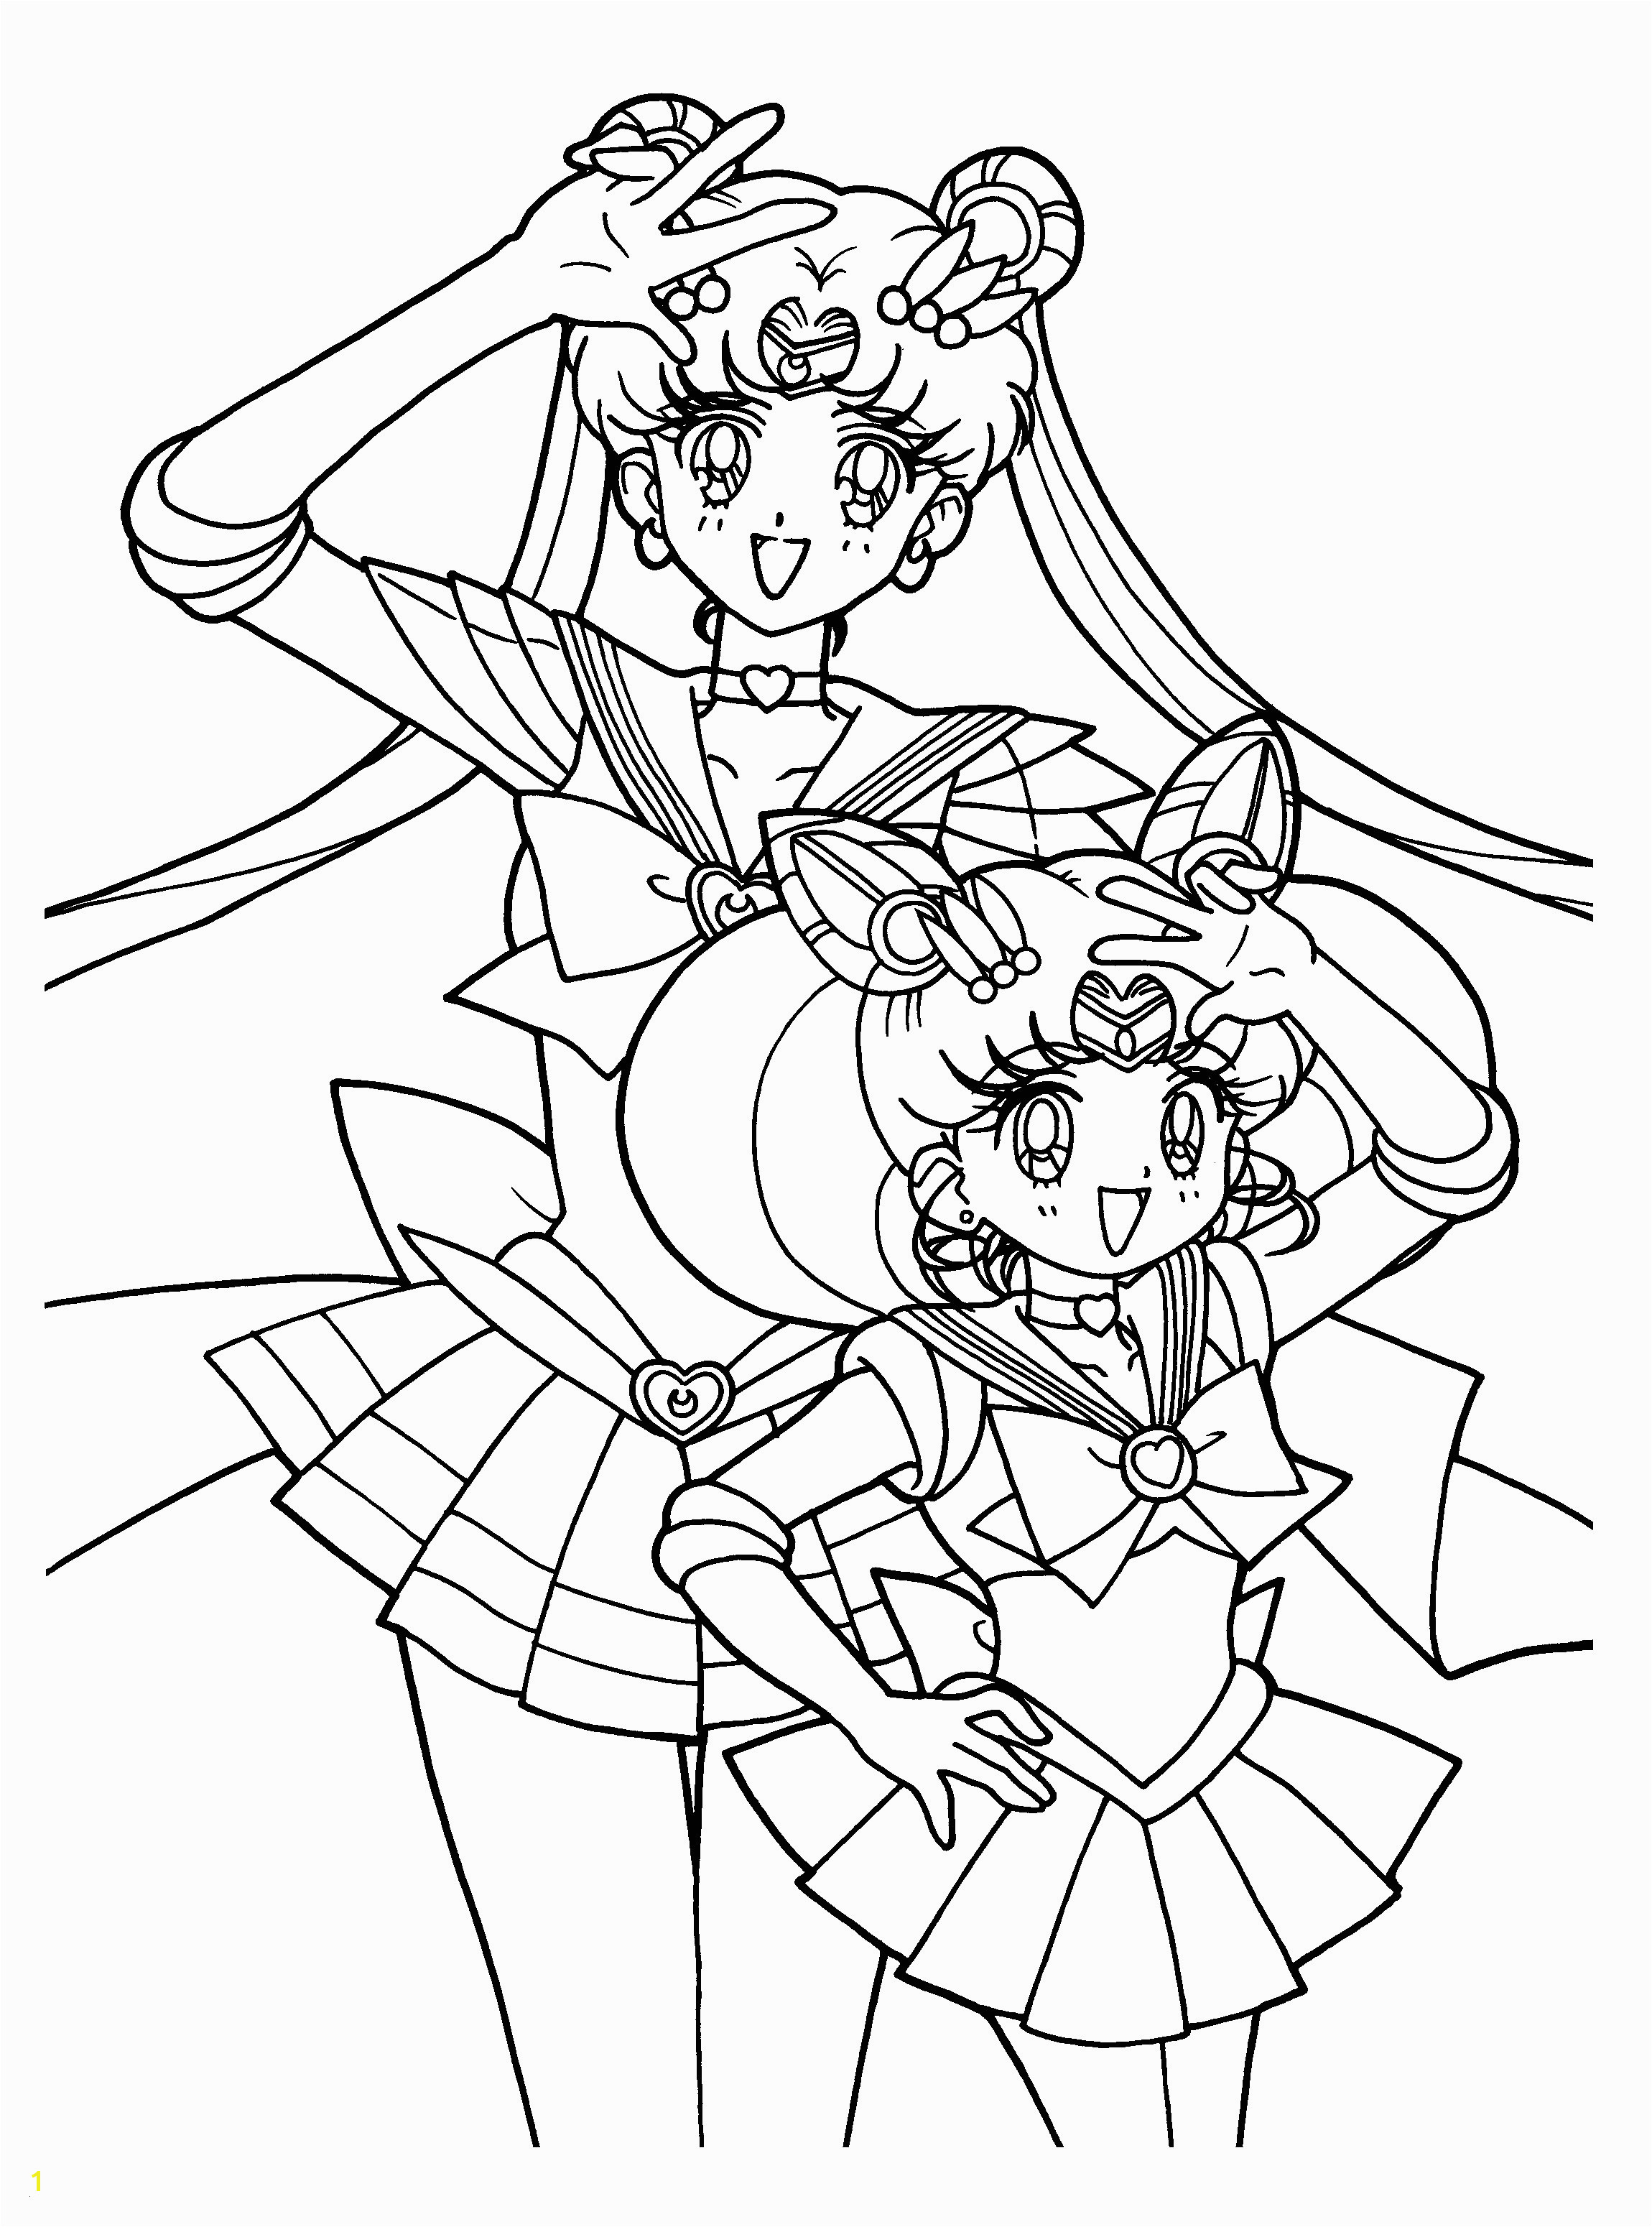 Sailor Mini Moon Coloring Pages Sailor Moon Coloring Pages Great Sailor Moon Coloring Pages